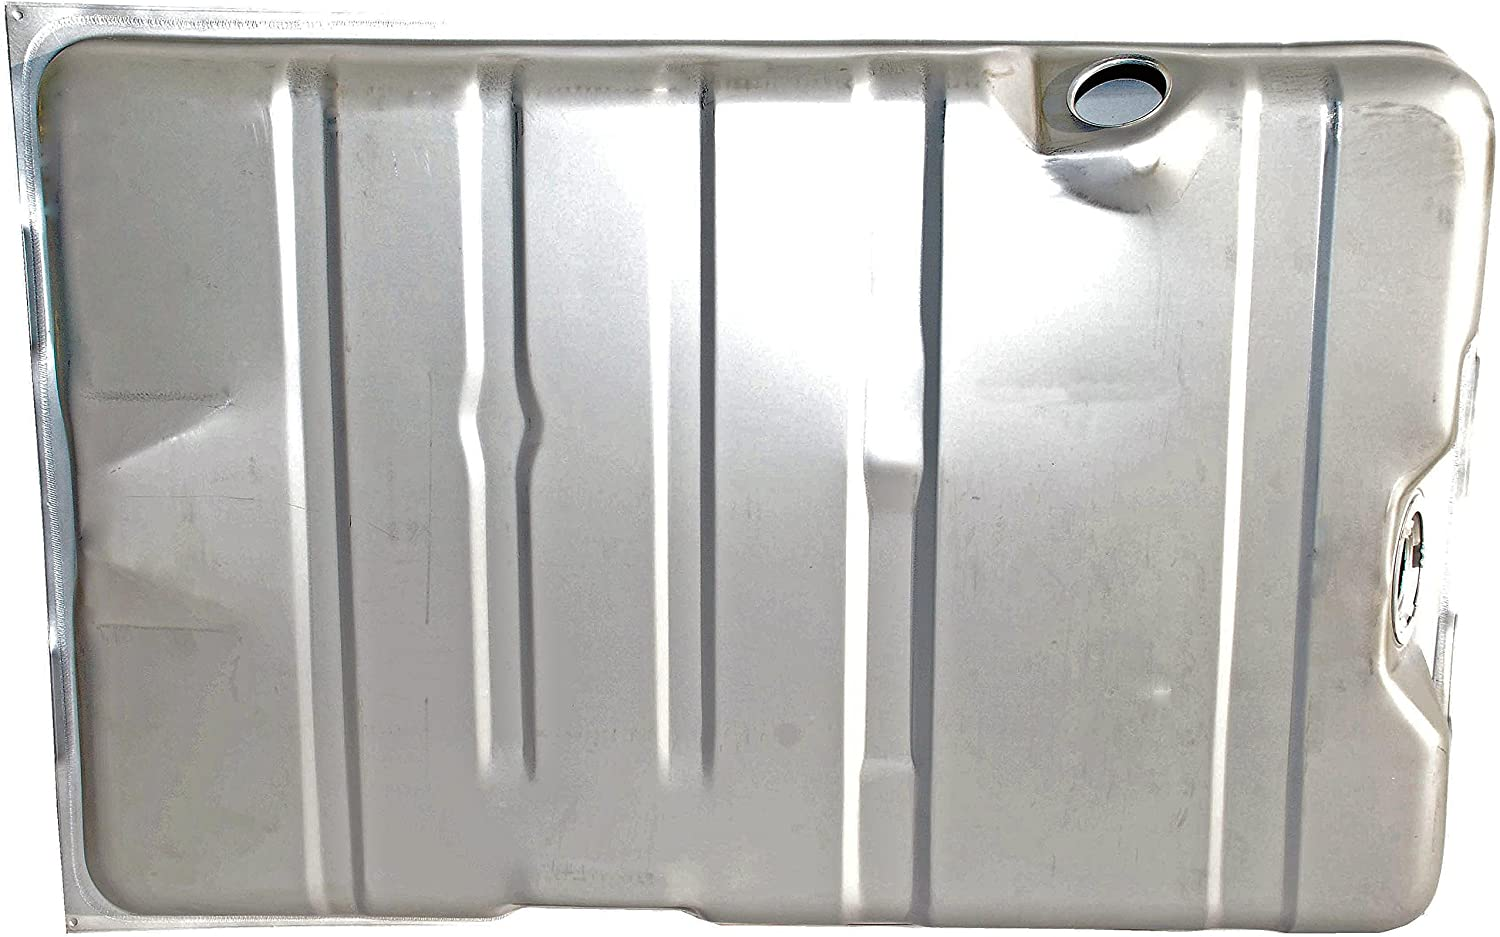 Dorman 576-032 Fuel Tank with Lock Ring and Seal